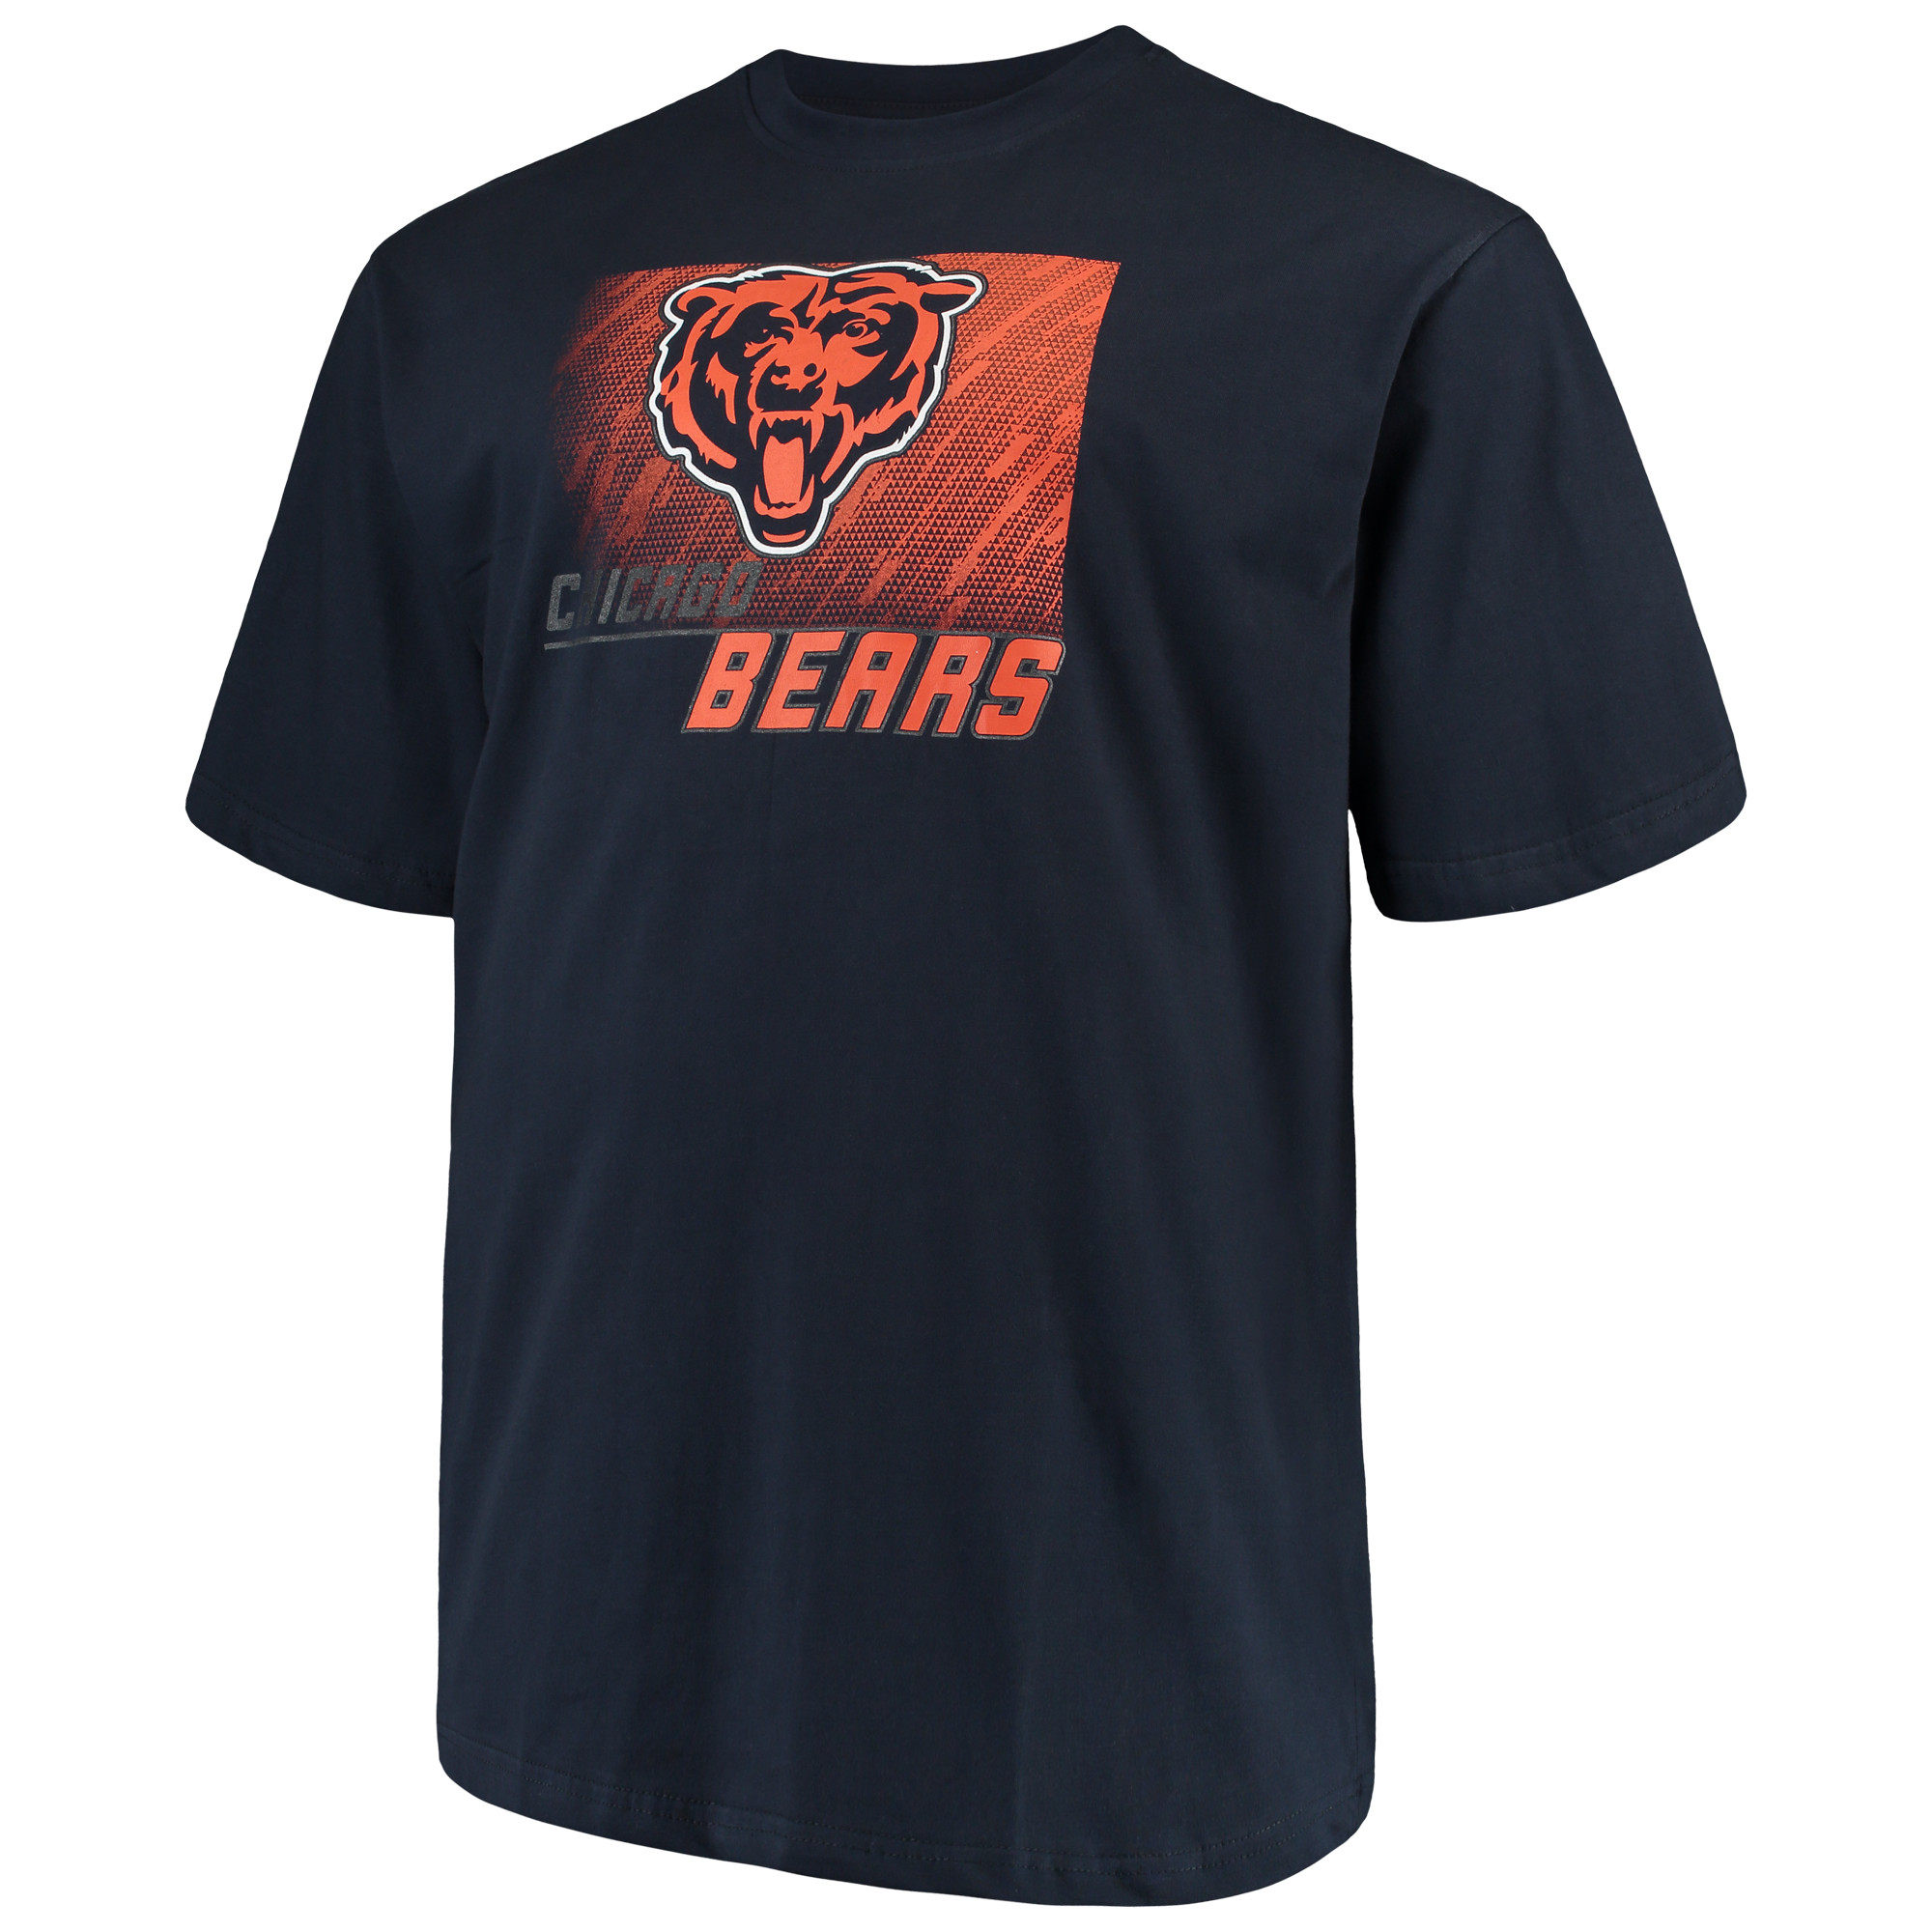 Men's Majestic Navy Chicago Bears Big & Tall Reflective T-Shirt